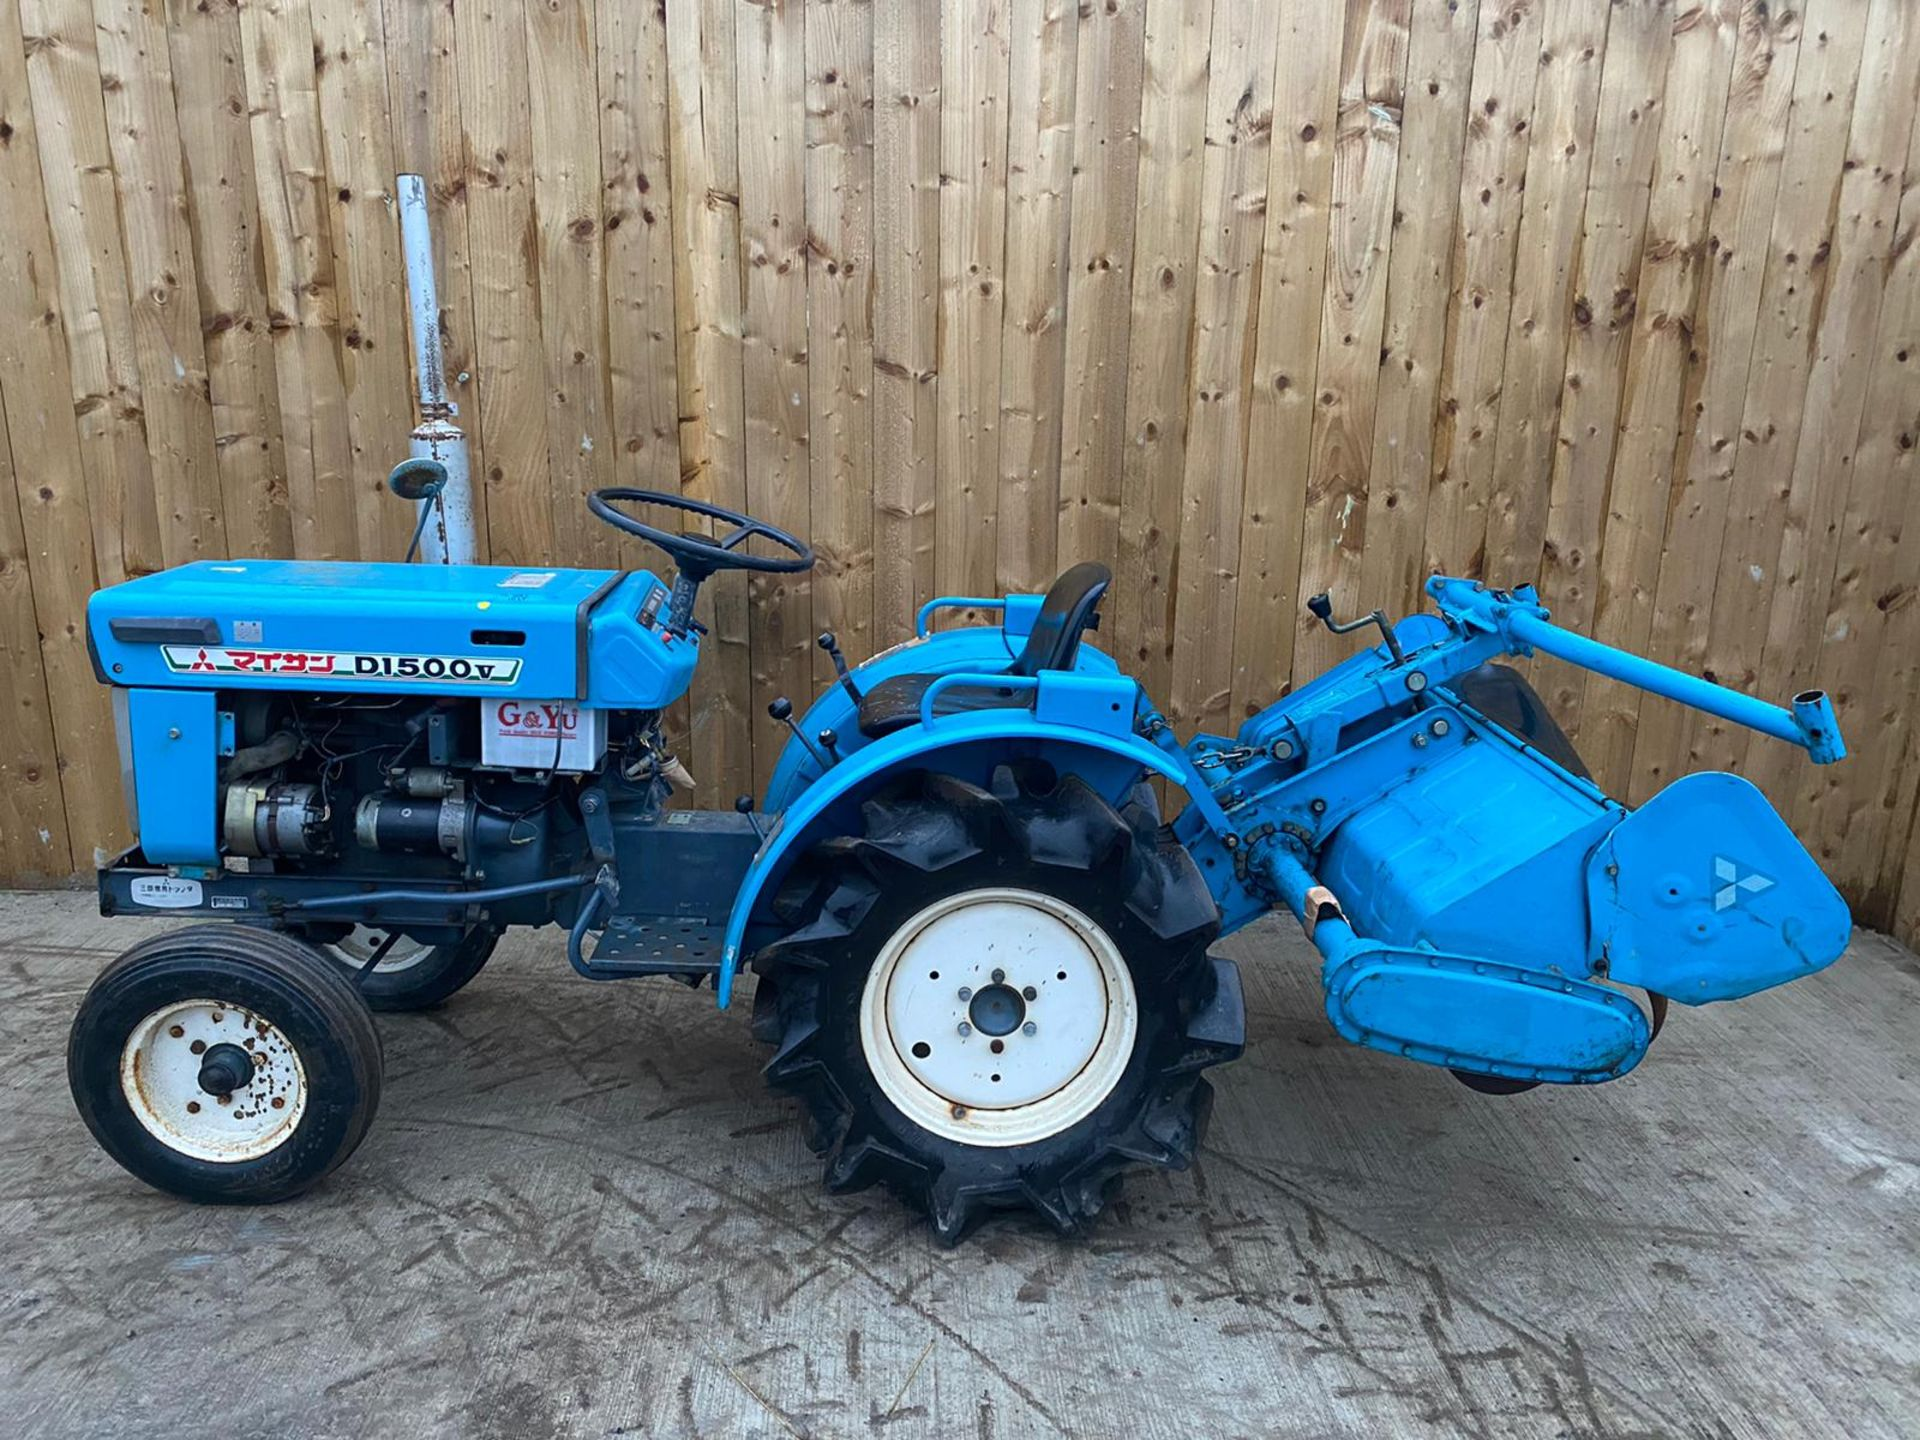 MITSUBISHI D1500V COMPACT TRACTOR & ROTOVATOR, STARTS, RUNS AND DRIVES & WORKS WELL *PLUS VAT* - Image 3 of 5